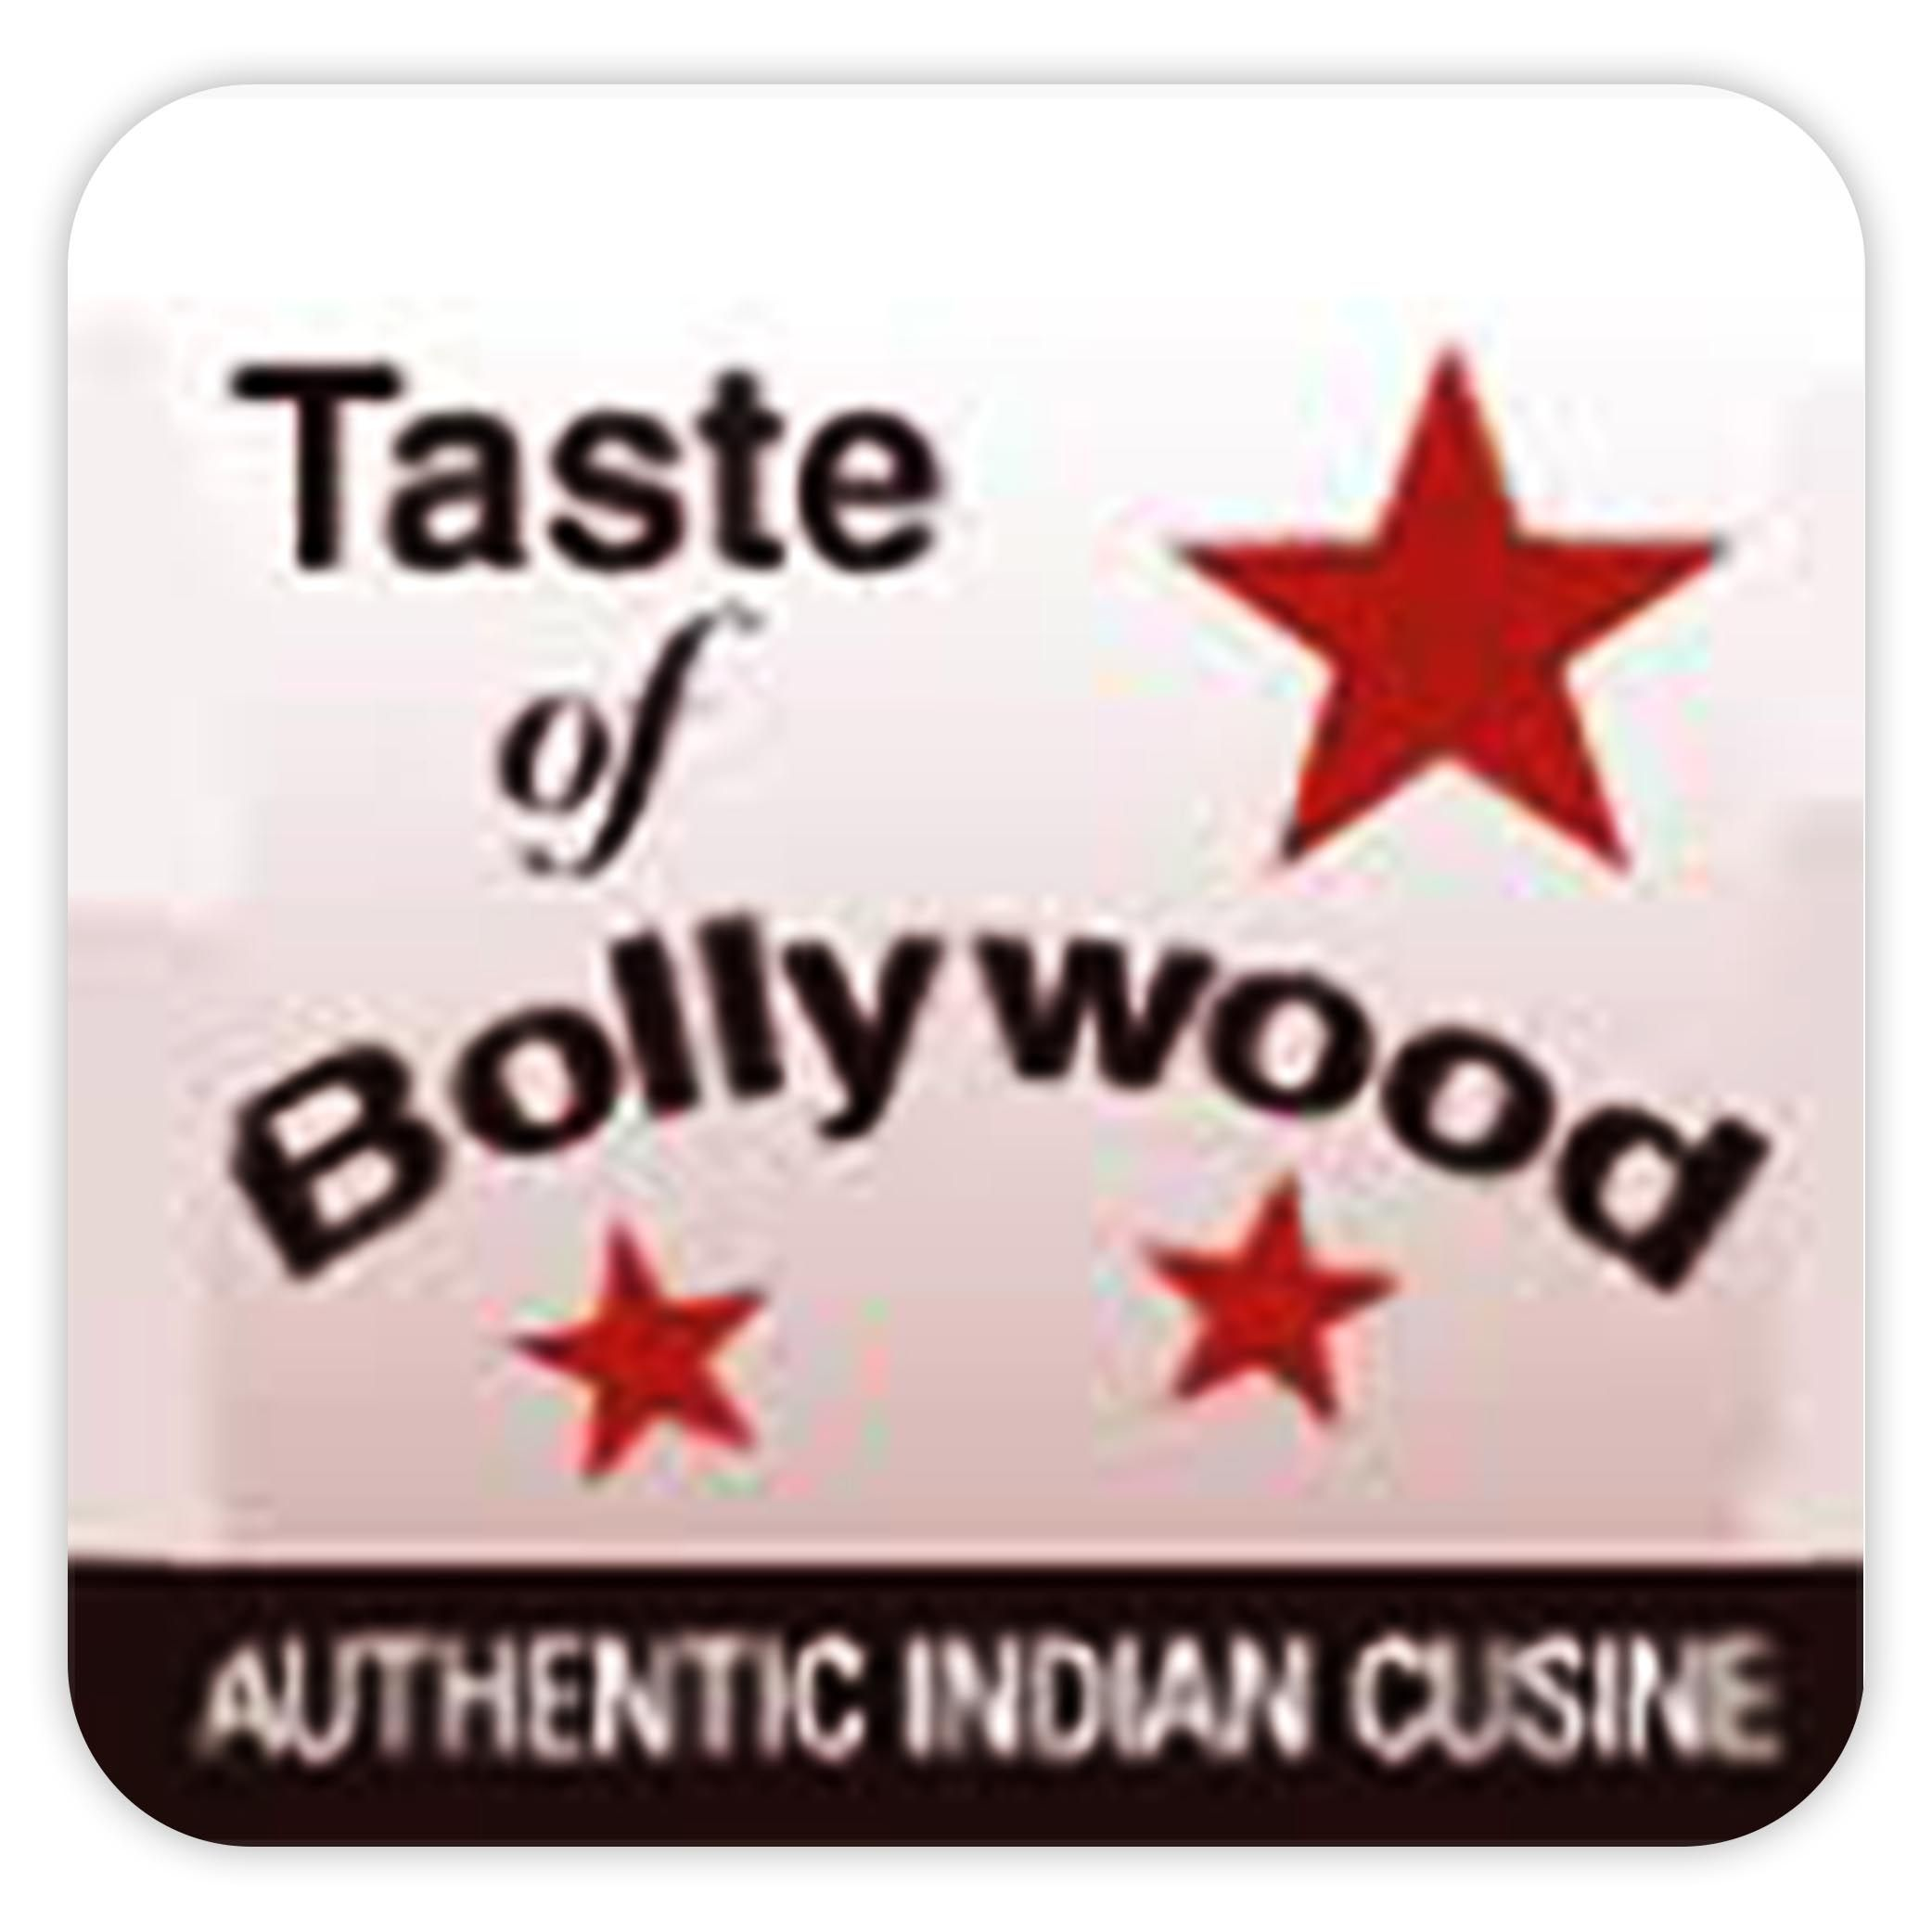 Taste of Bollywood